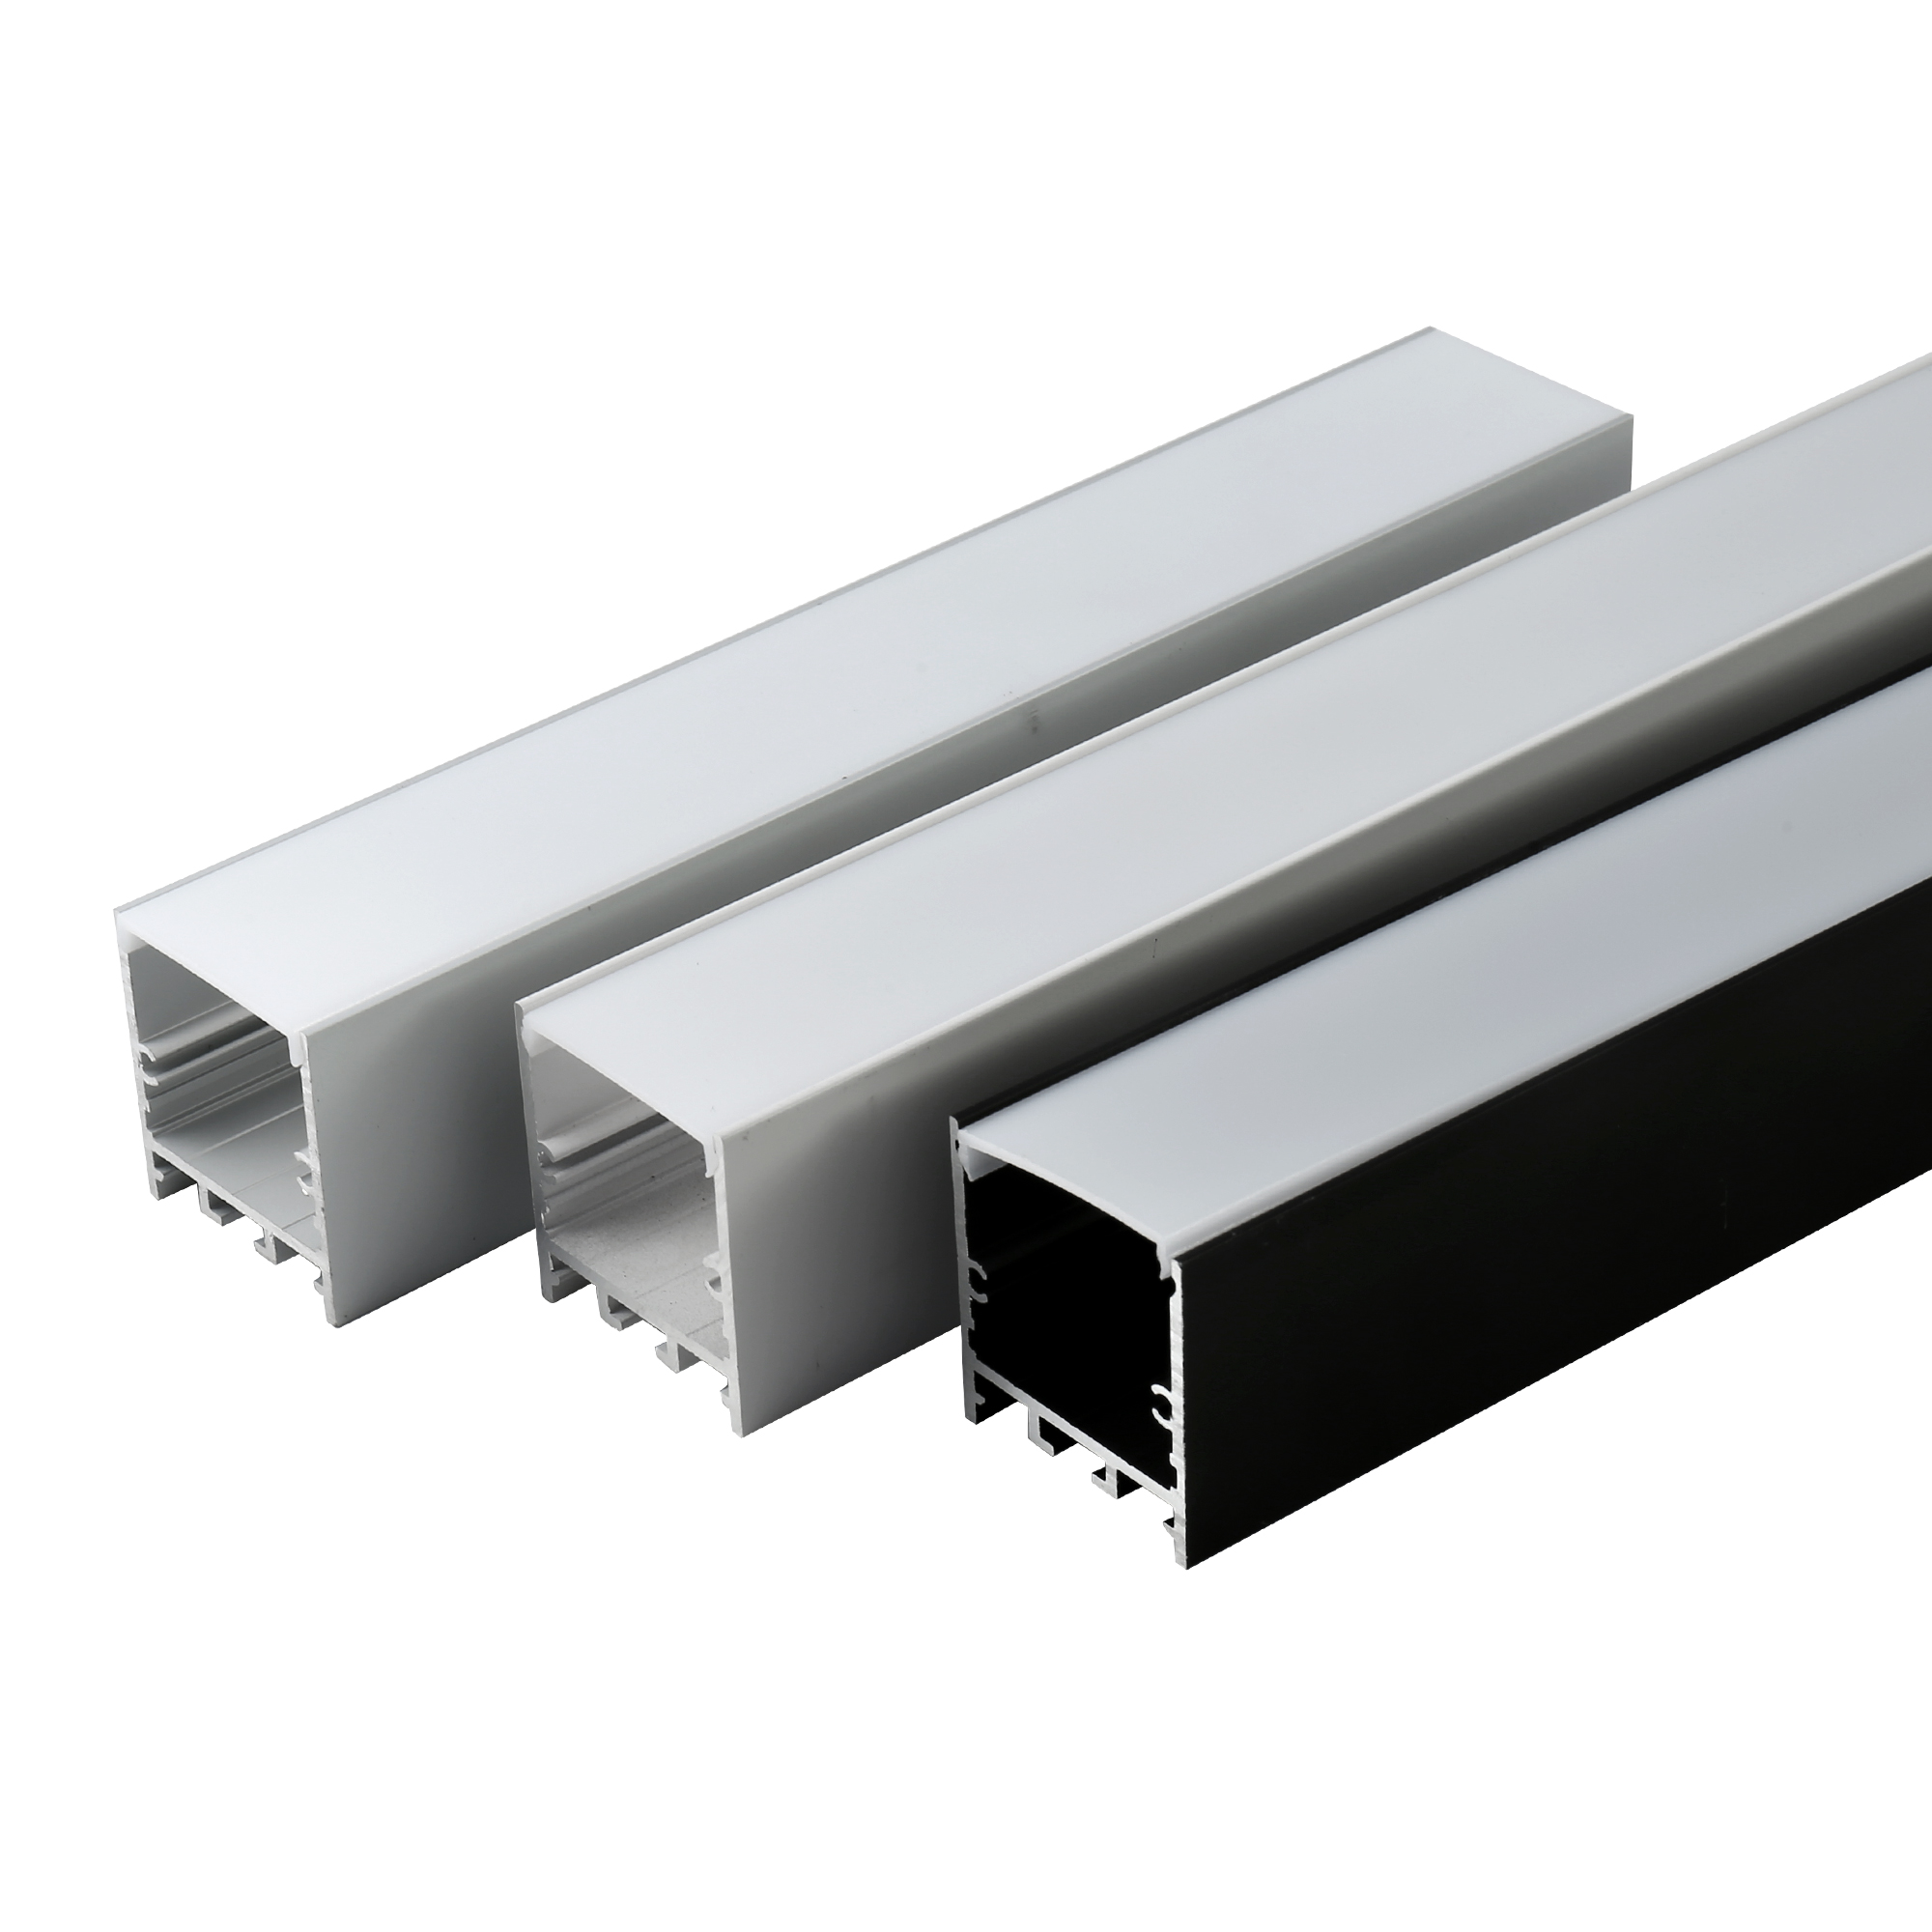 Aluminum Profile Manufacturer  Led Light Housing Heatsink Extruded  Led Aluminum Profile